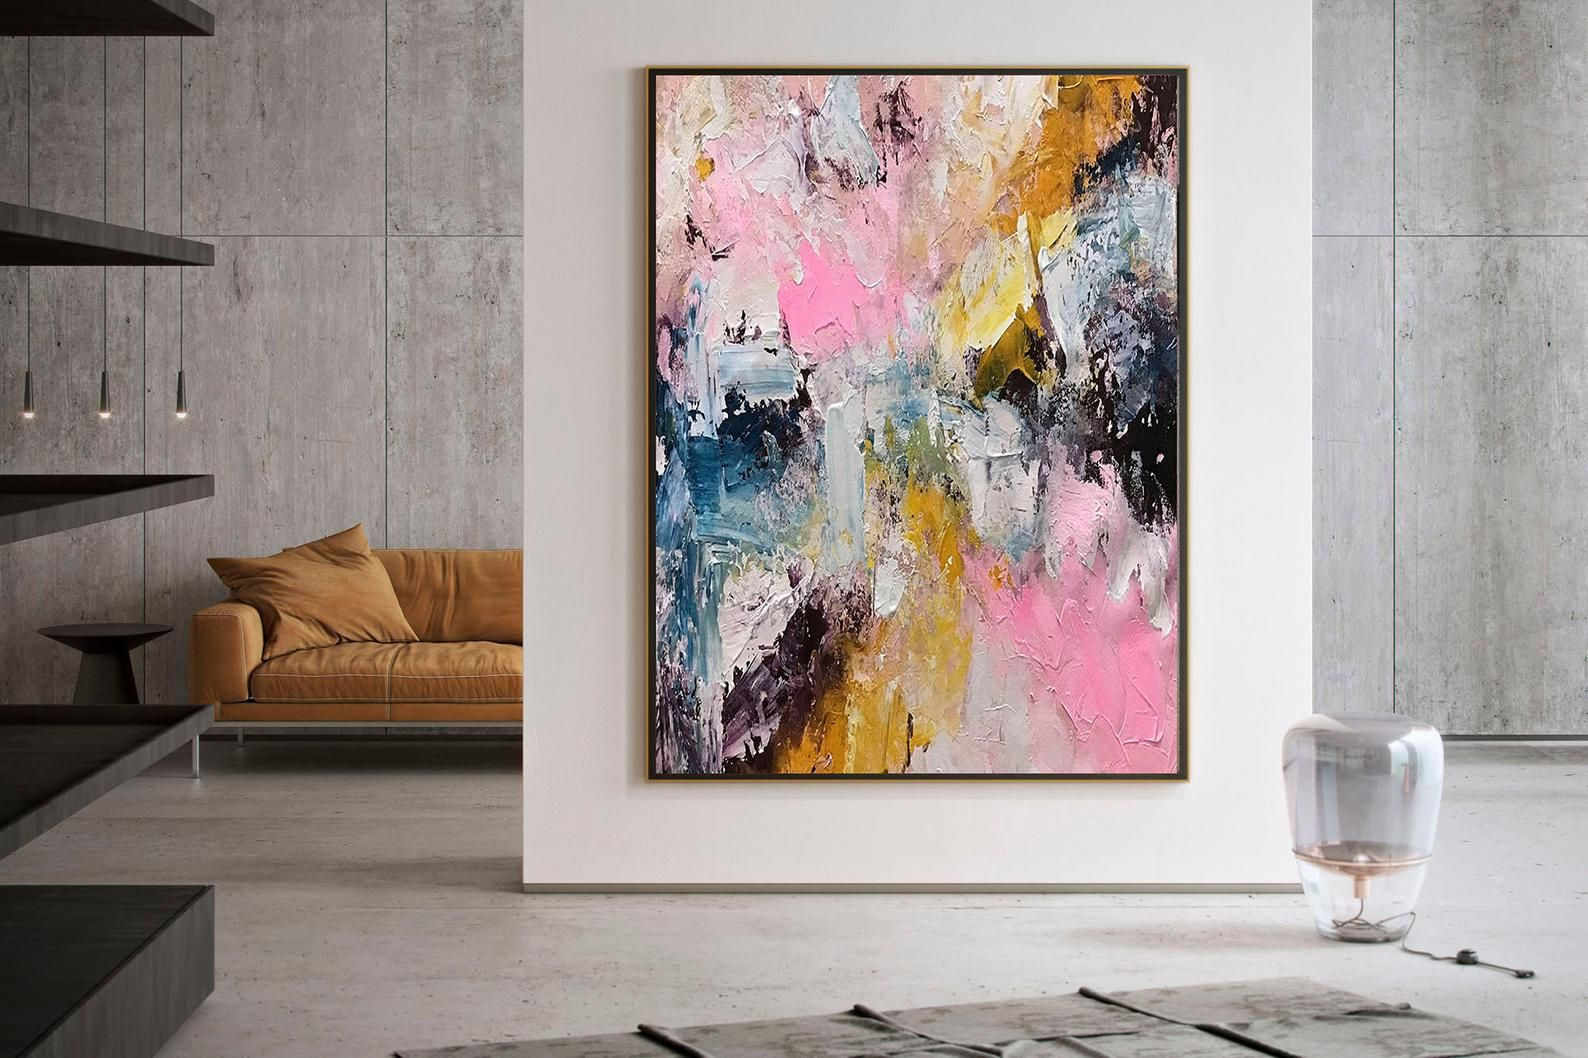 Large Abstract Painting Large Abstract Painting On Canvas Texture Art Painting Acrylic Abstract Office Decor Set Dic033 Abstrakte Malerei Abstrakte Wandkunst Abstrakt